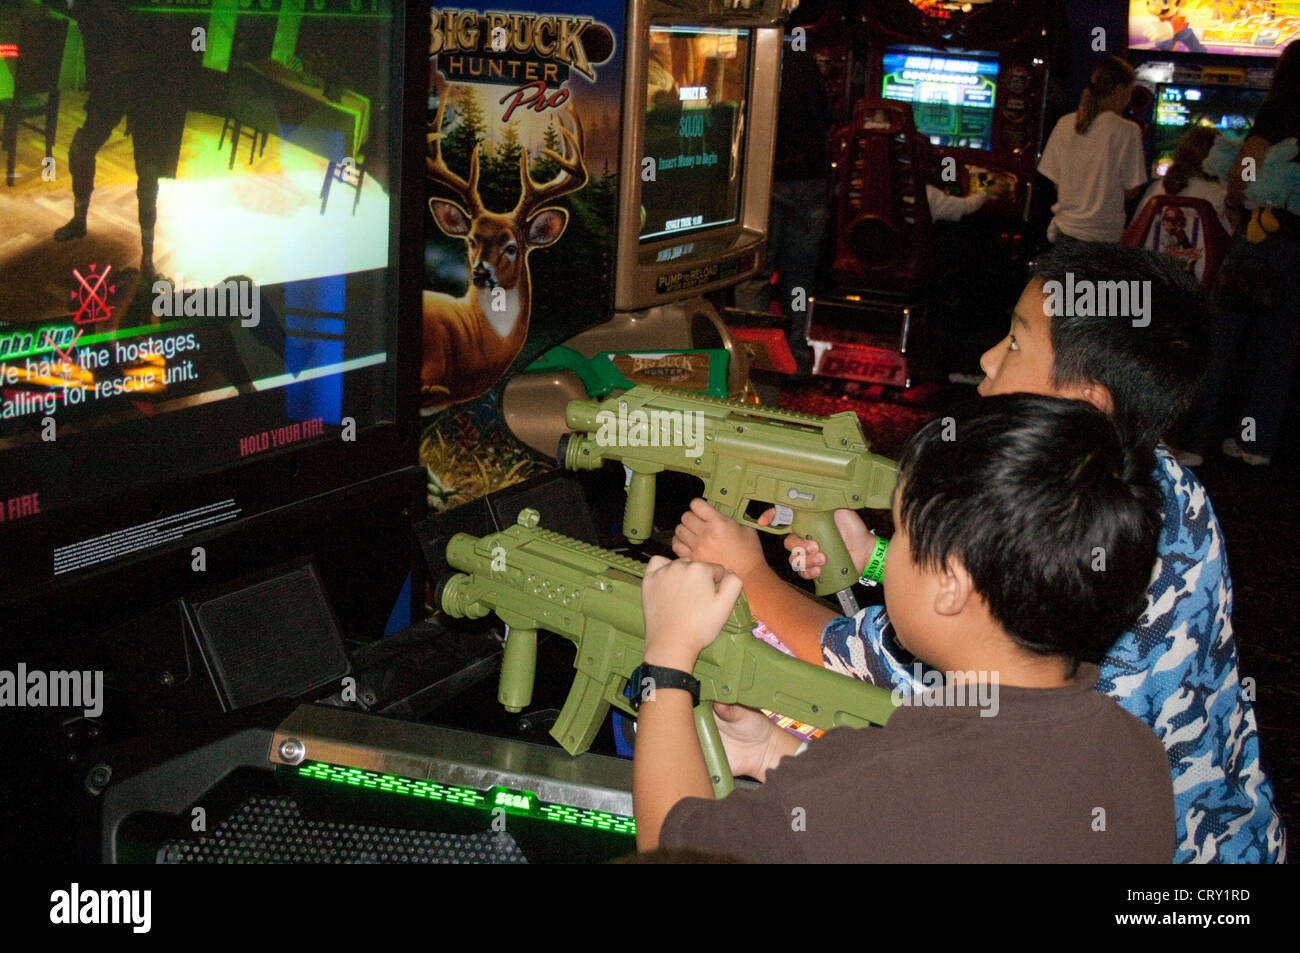 Arcades In Mn >> Asian American Boys Age 7 Playing Arcade Electronic Video Rifle Game